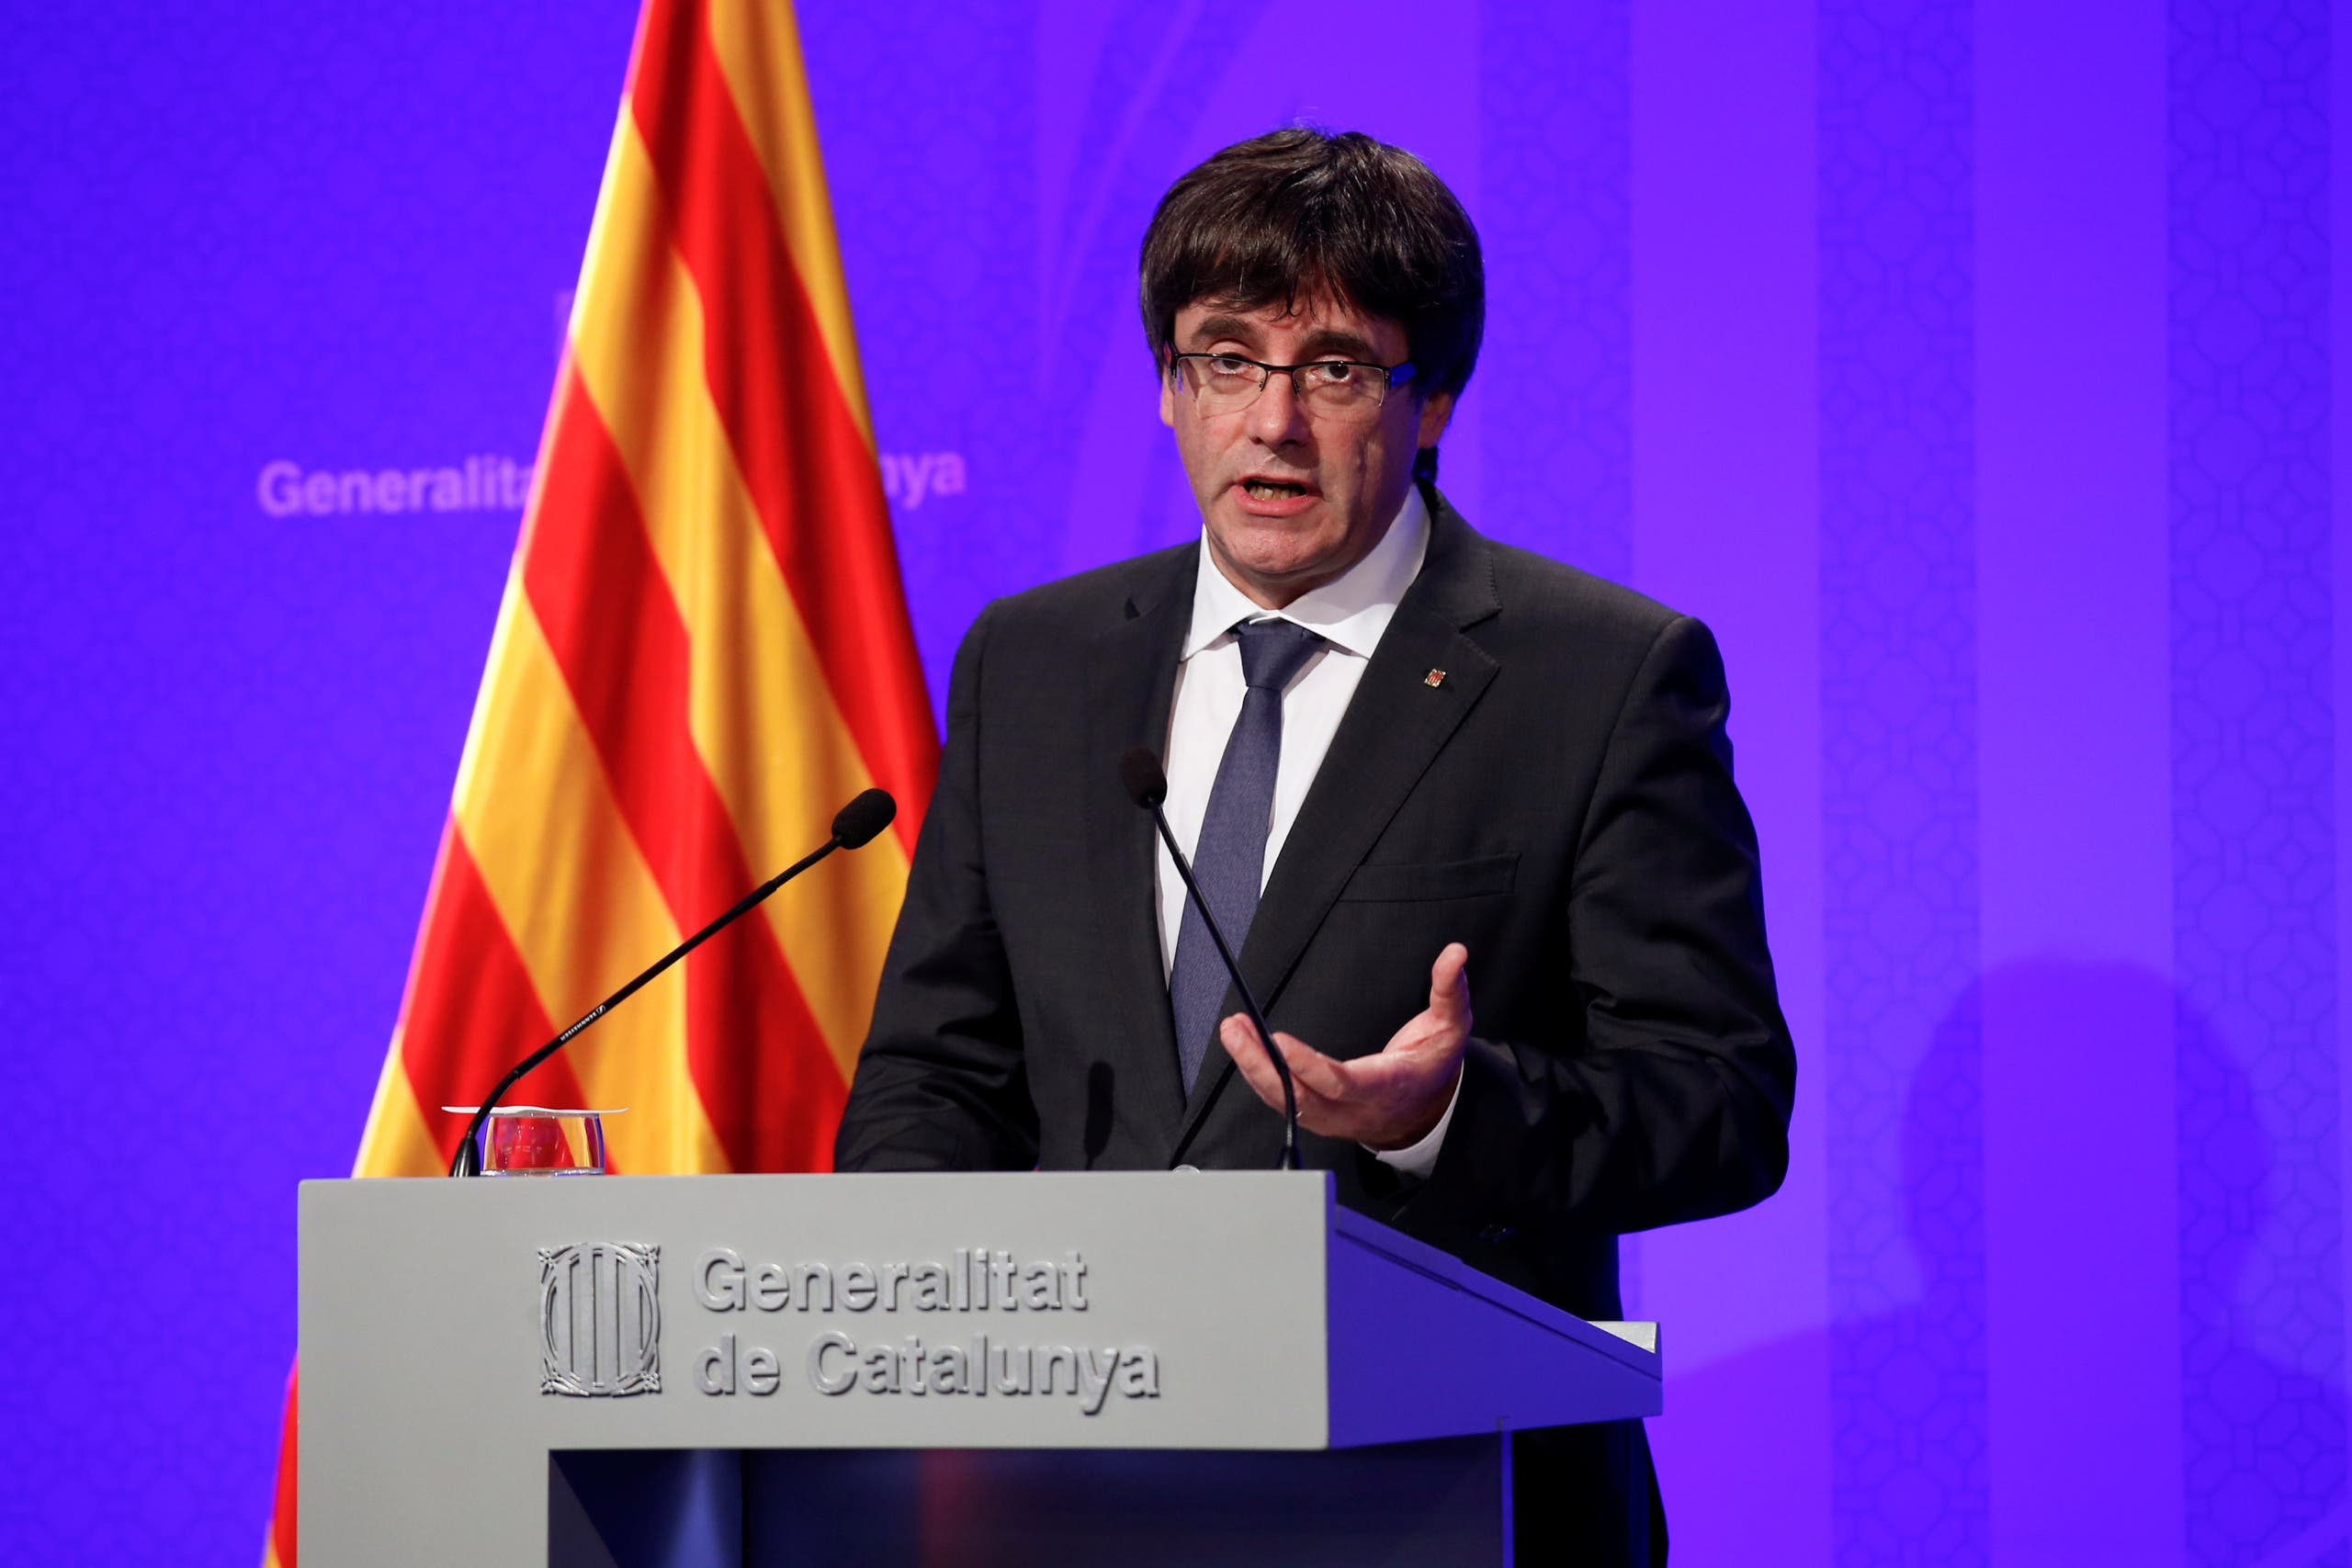 Catalan President Carles Puigdemont speaks during a news conference at Generalitat Palace in Barcelona, Spain October 2, 2017. REUTERS/Albert Gea